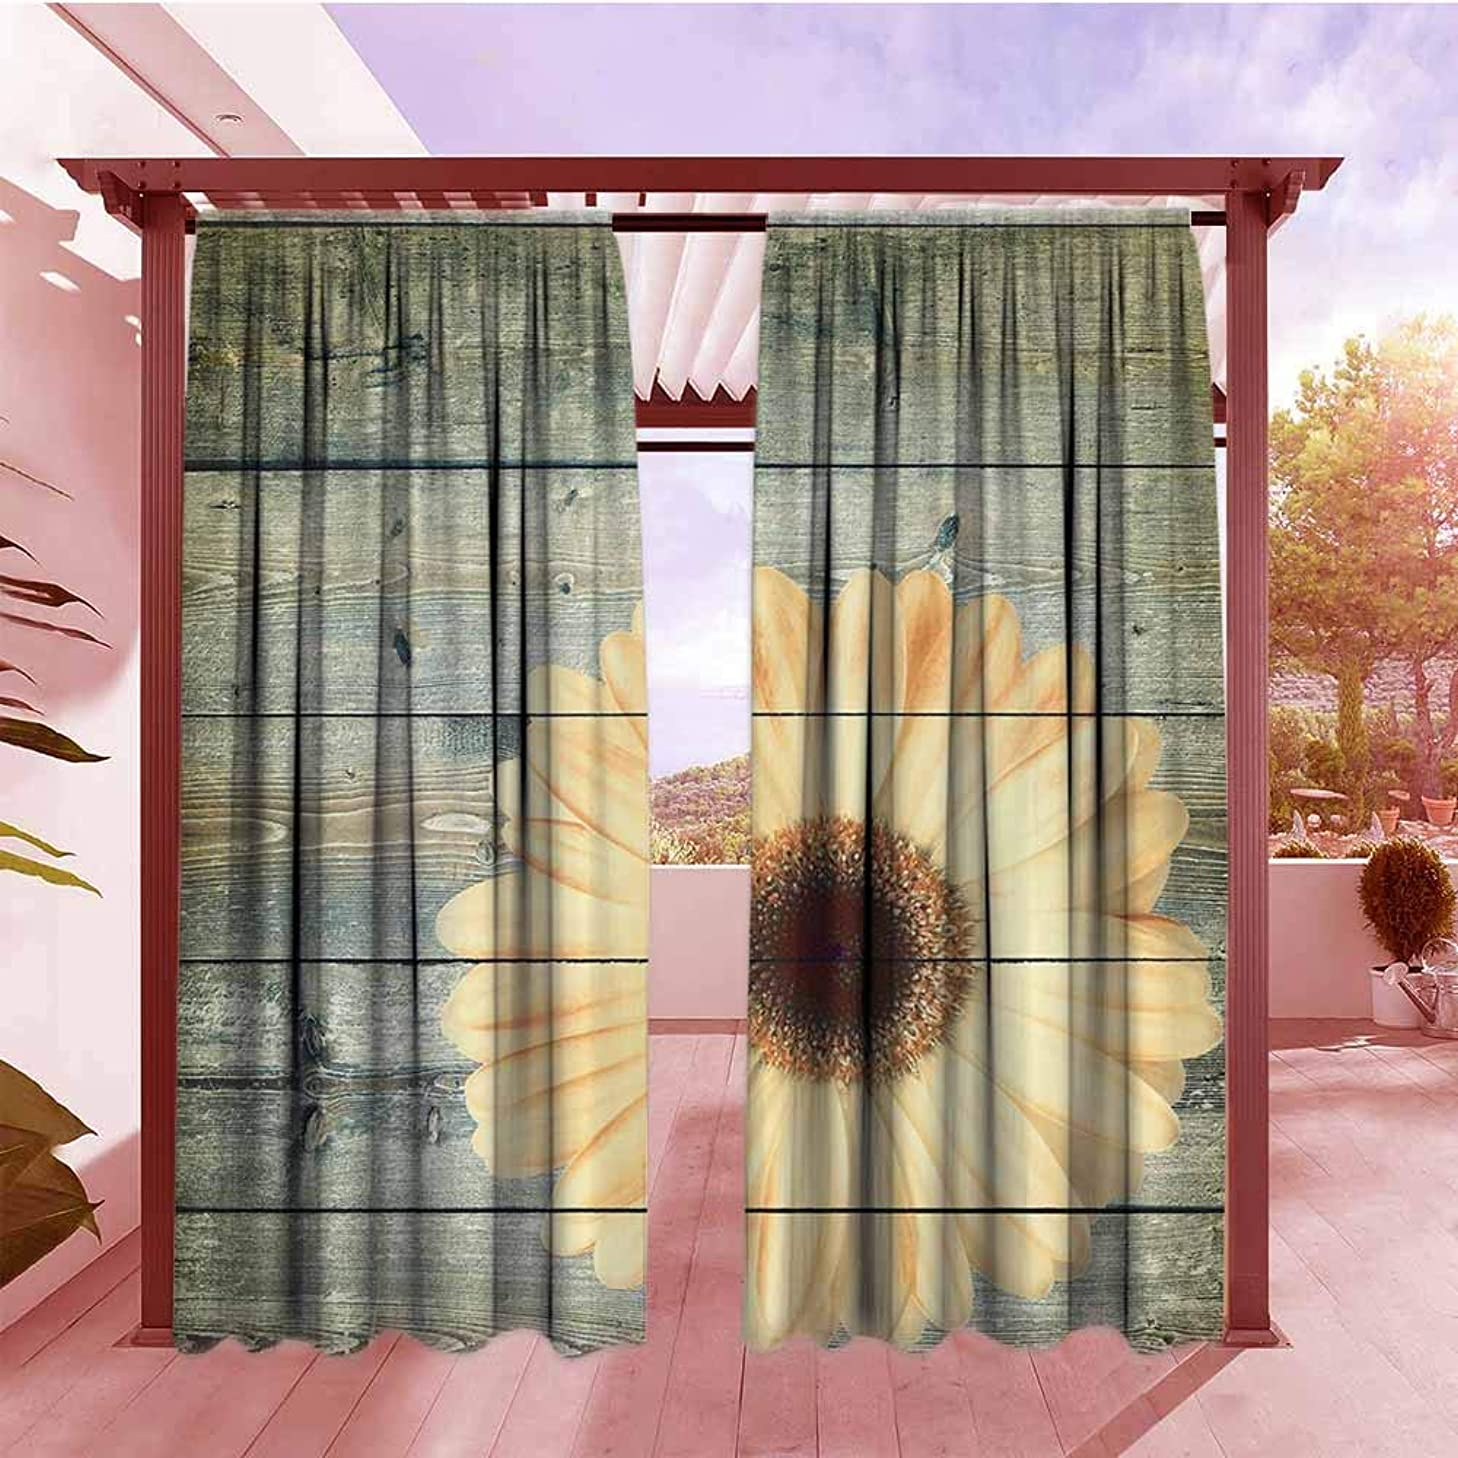 Curtains Rod Pocket Two Panels Abstract Oak Tree Wood and Daisy Gerbera Flower Green Yellow Simple Stylish W72x96L